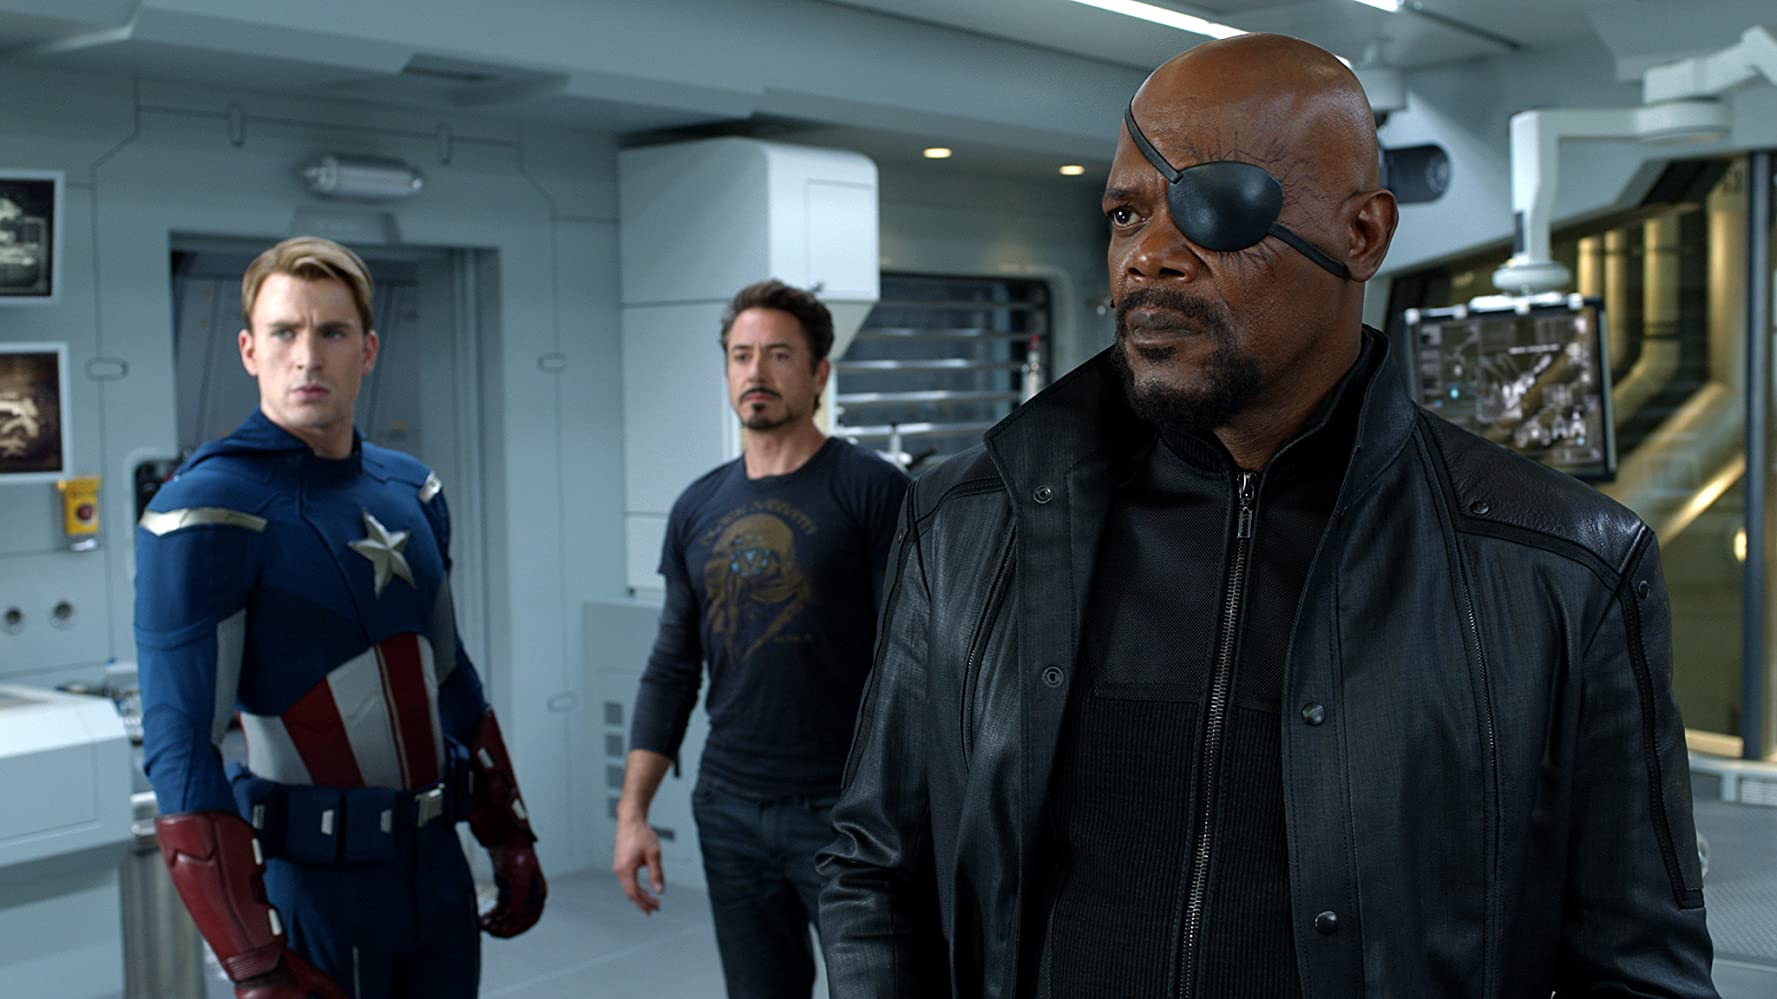 Samuel L. Jackson, Robert Downey Jr., and Chris Evans / The Avengers / Marvel & Walt Disney Studios. © 2019. All rights reserved.